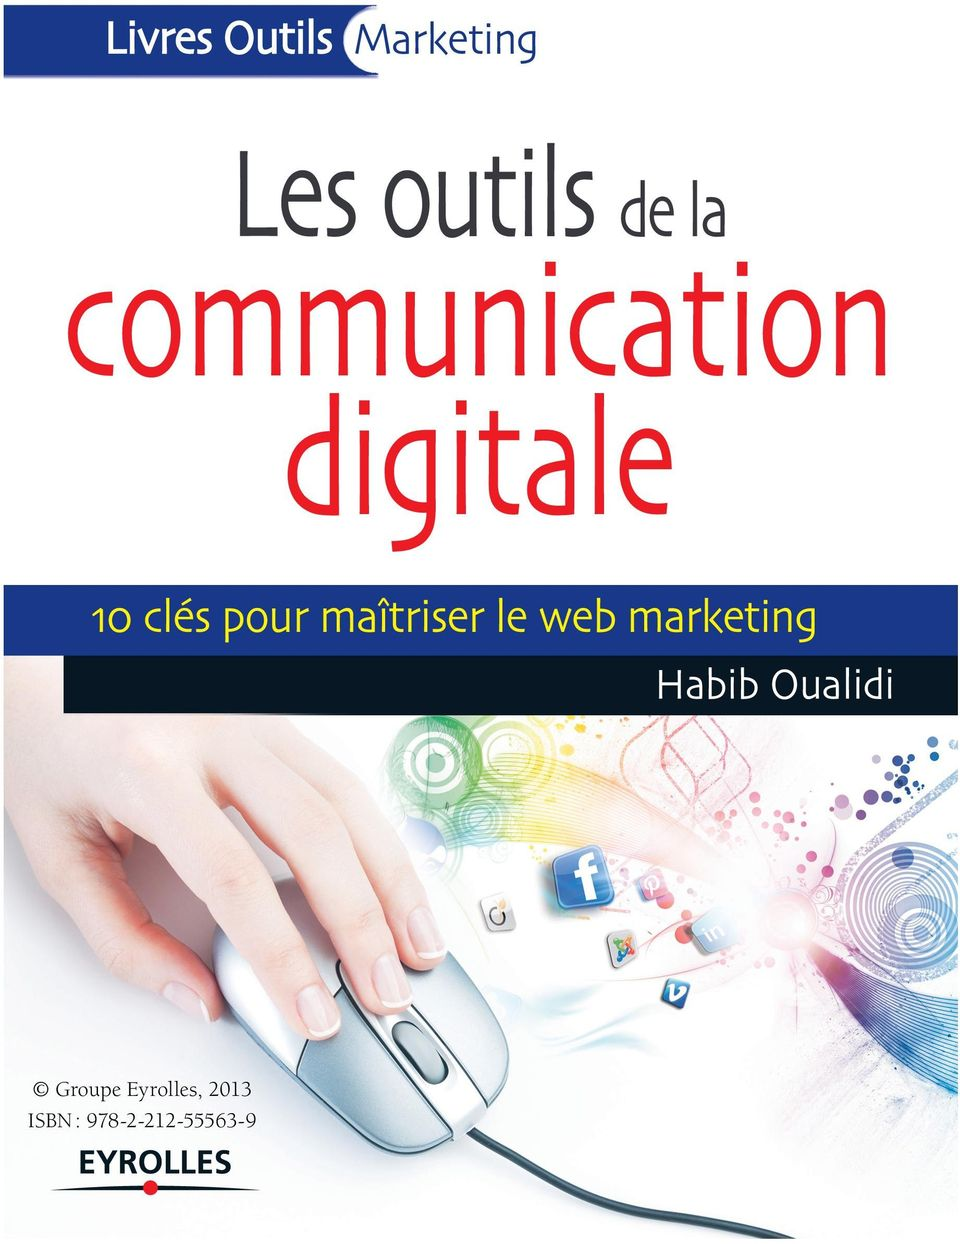 pour maîtriser le web marketing